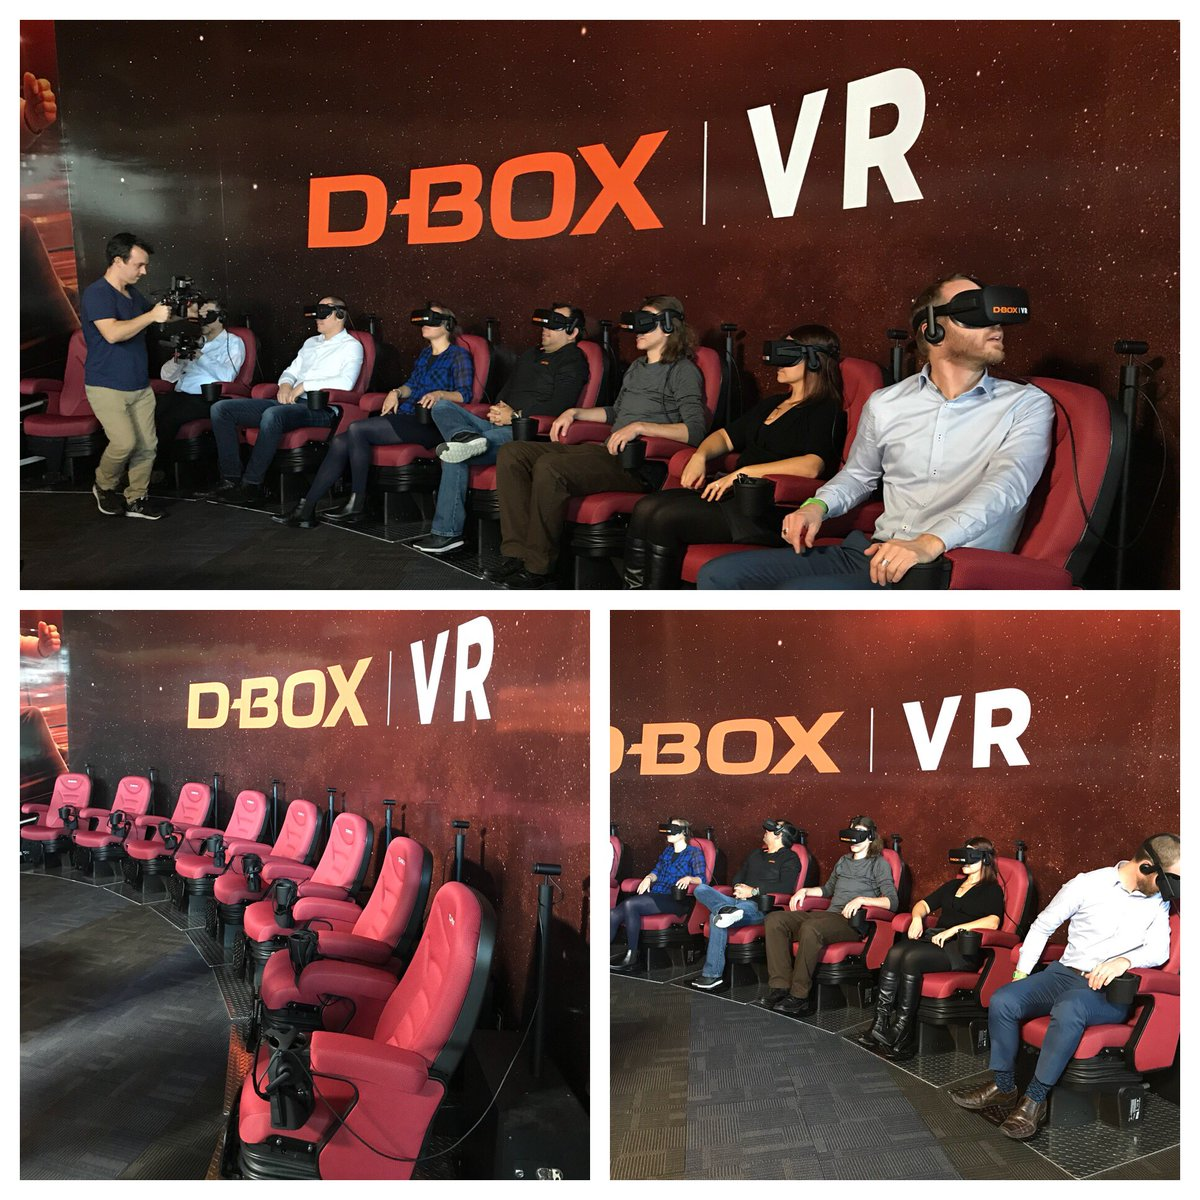 test Twitter Media - RT @dboxtech: D-BOX VR is opening today, must try Raising a Rukus created by @VRcompany presented @CineplexMovies https://t.co/uJYTYuvW21